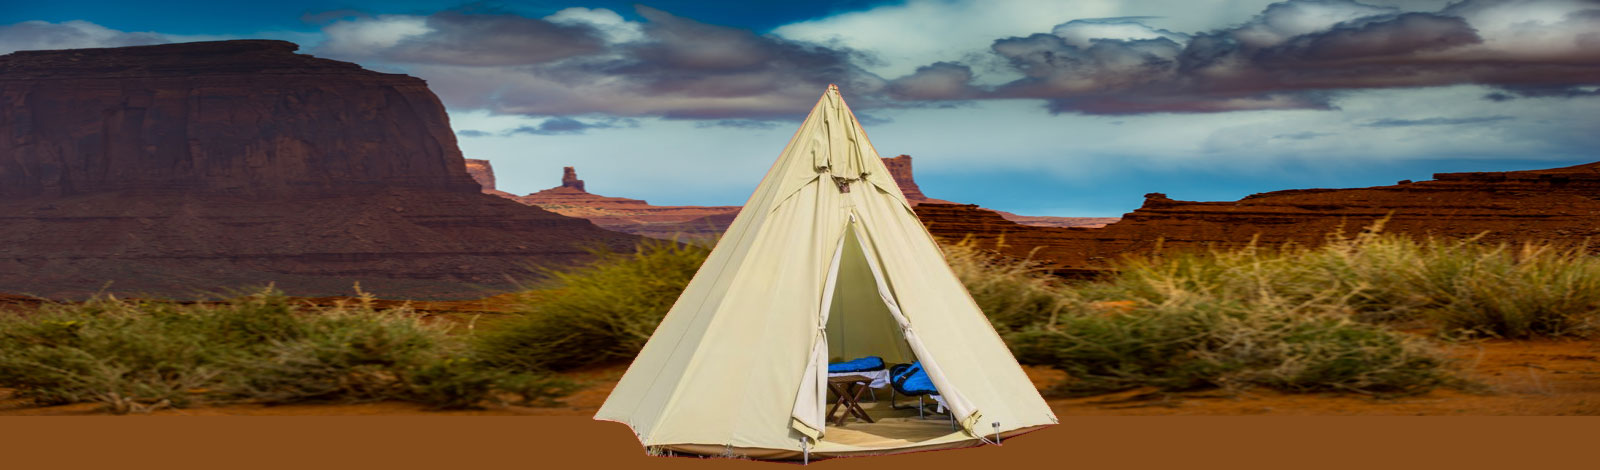 Best Glamping Destinations Tepee